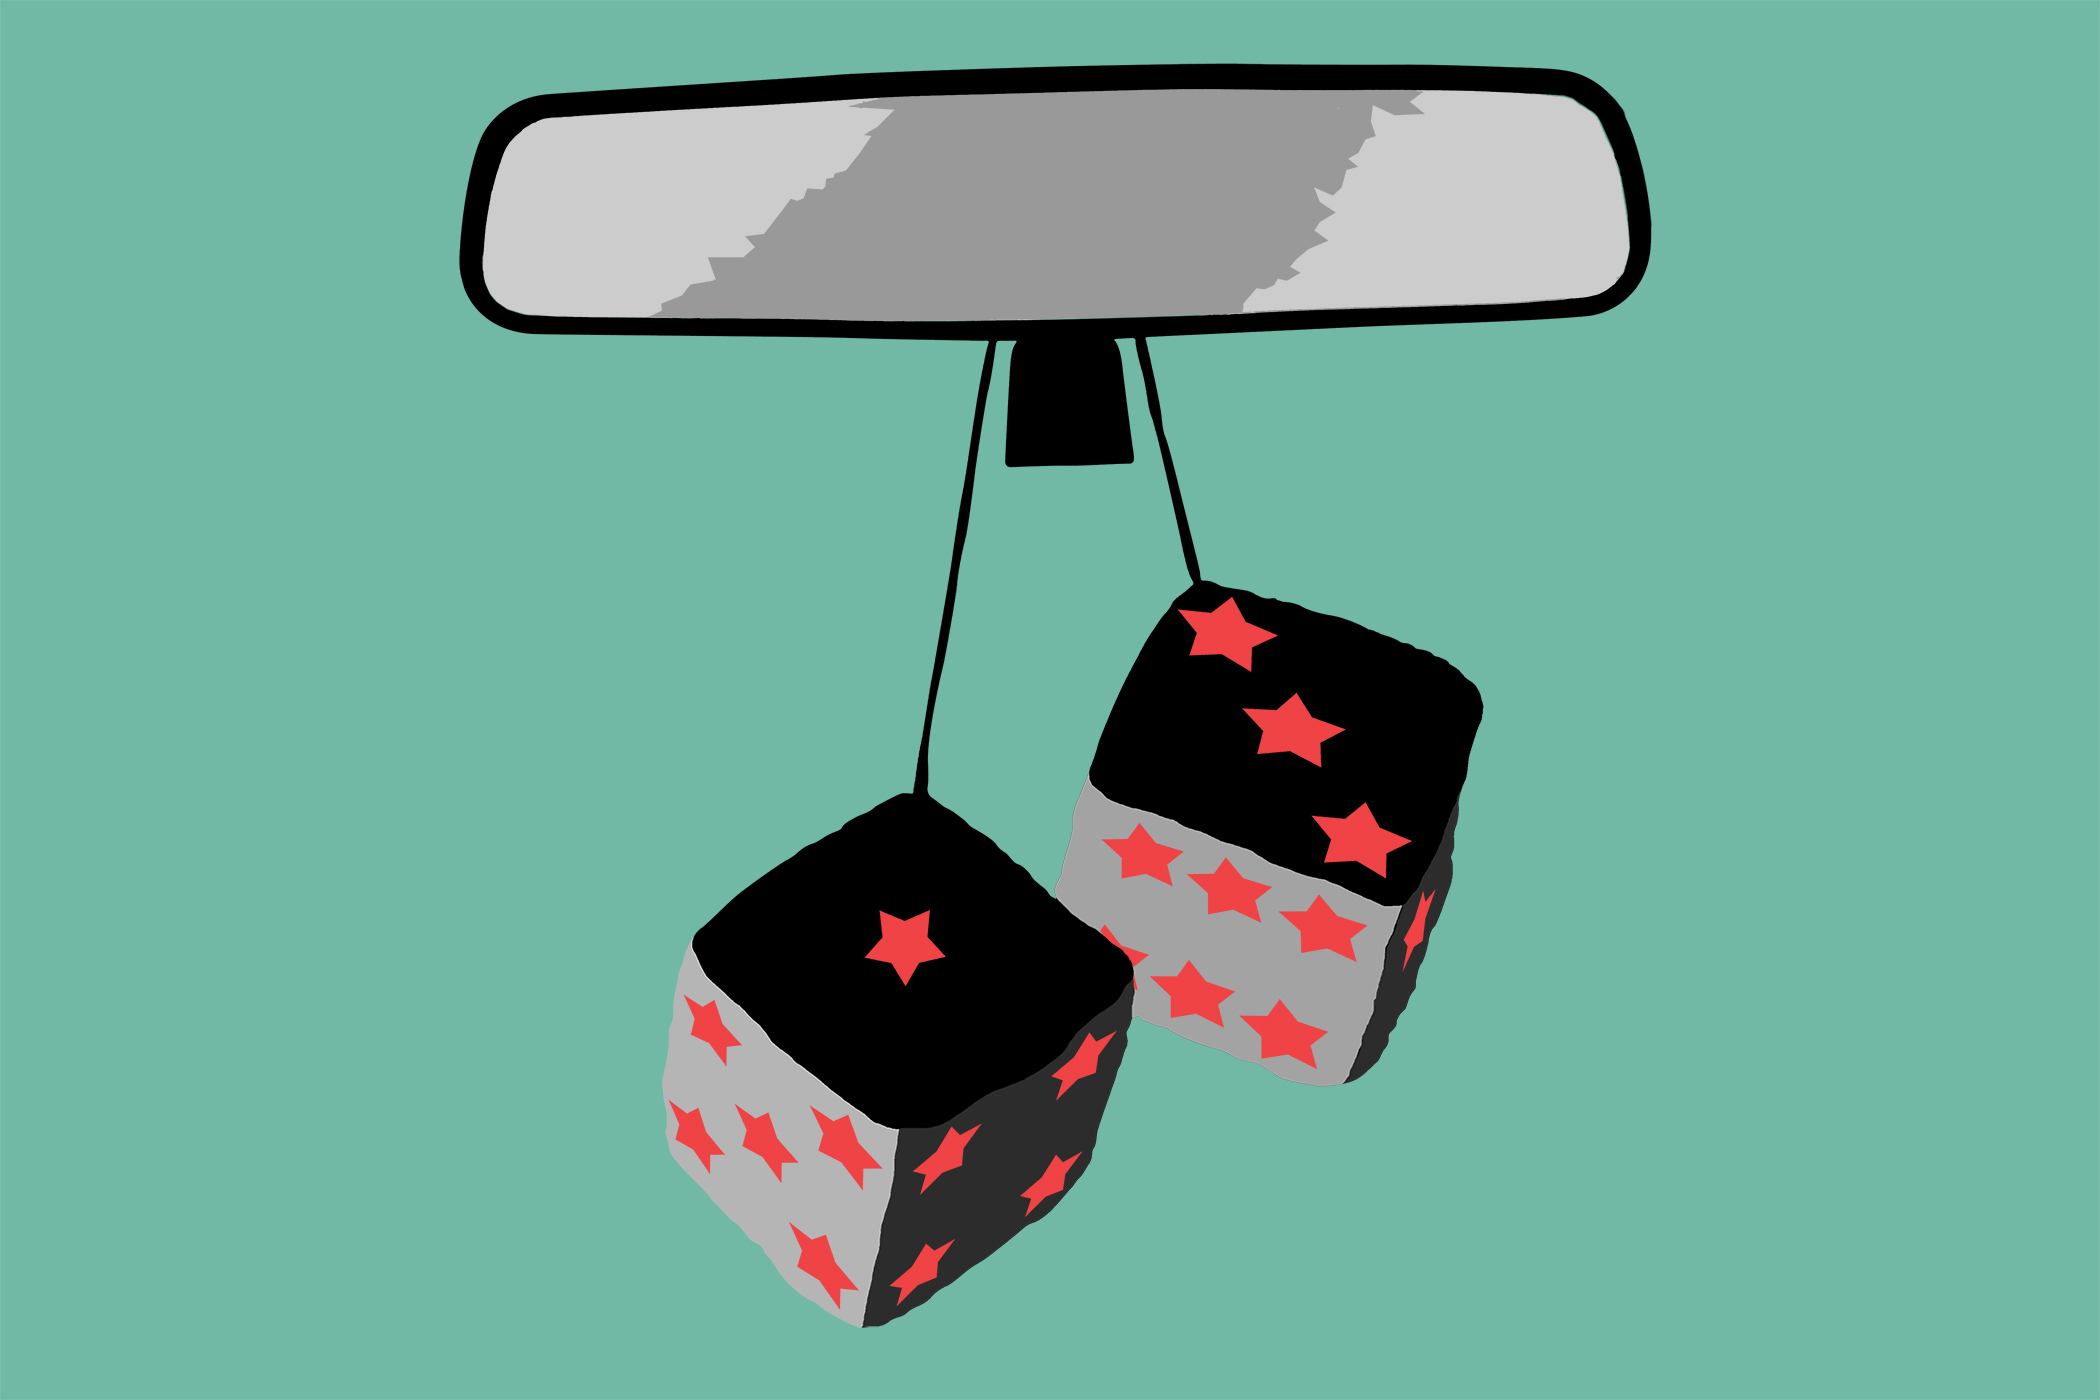 dice with stars hanging from mirror